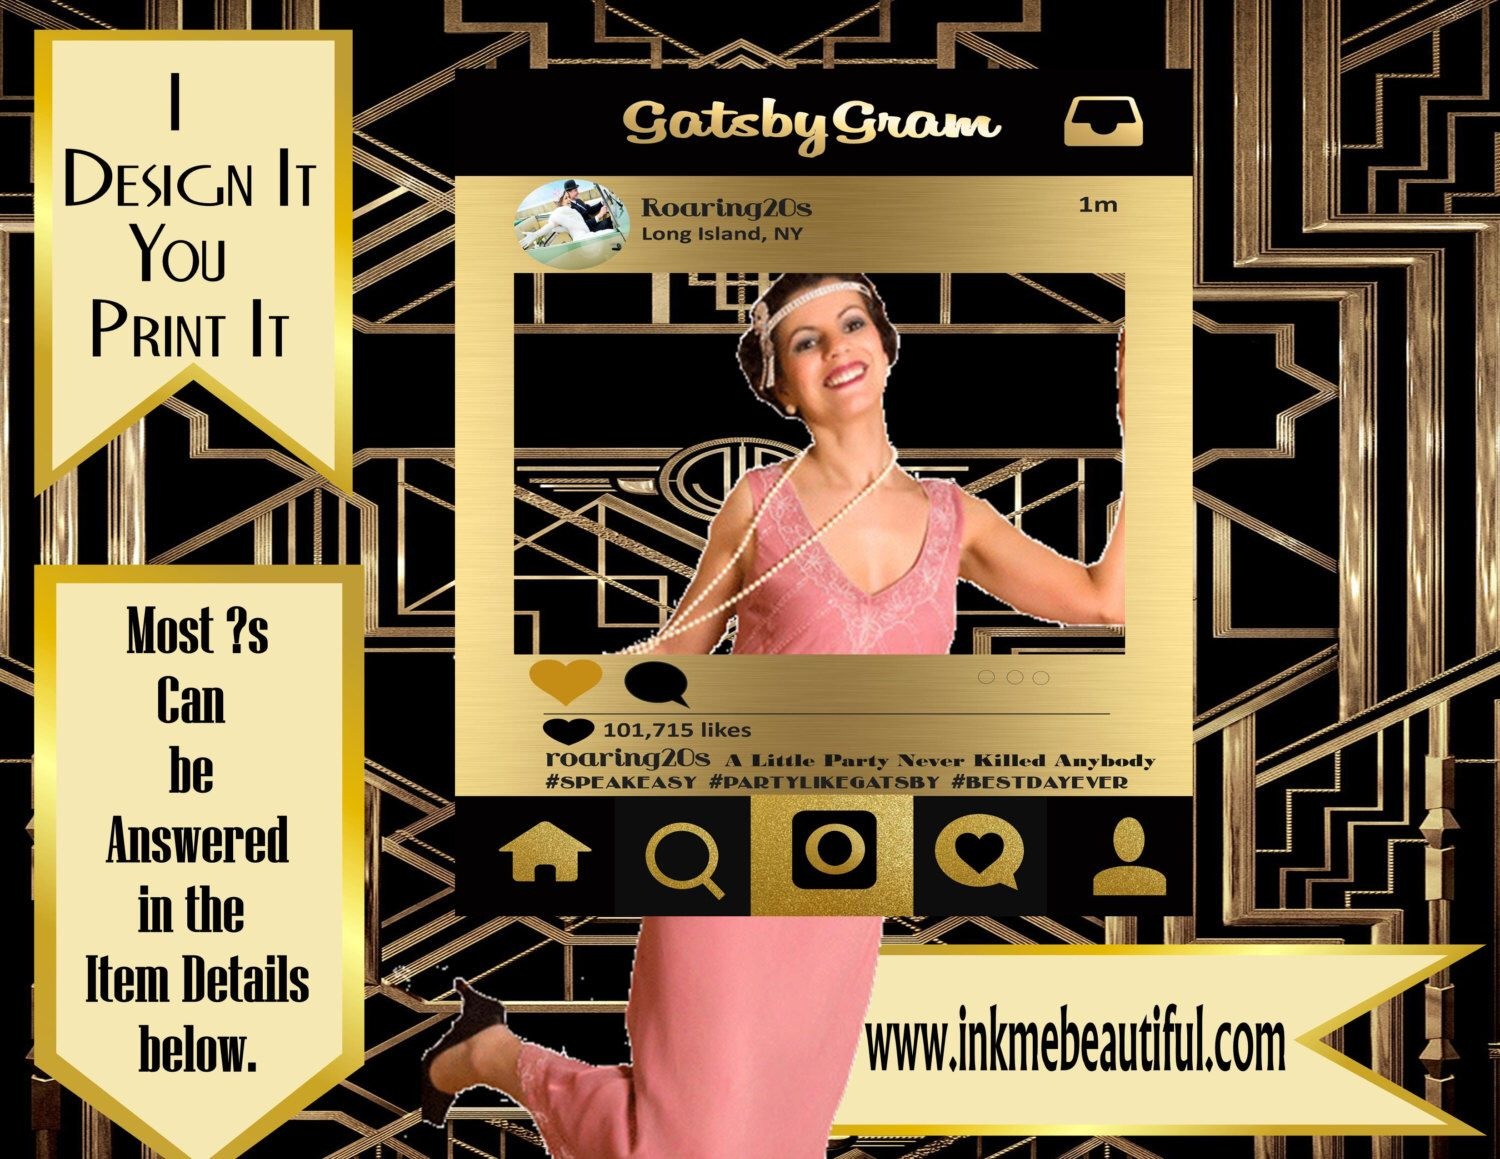 DIGITAL FILE**Photo frame Prop 24X36 or 20x30, Gatsby party decoration*Roaring 20s Art deco*Wedding photobooth sign, Photobooth Prop by inkmebeautiful on Etsy https://www.etsy.com/listing/235440808/digital-filephoto-frame-prop-24x36-or